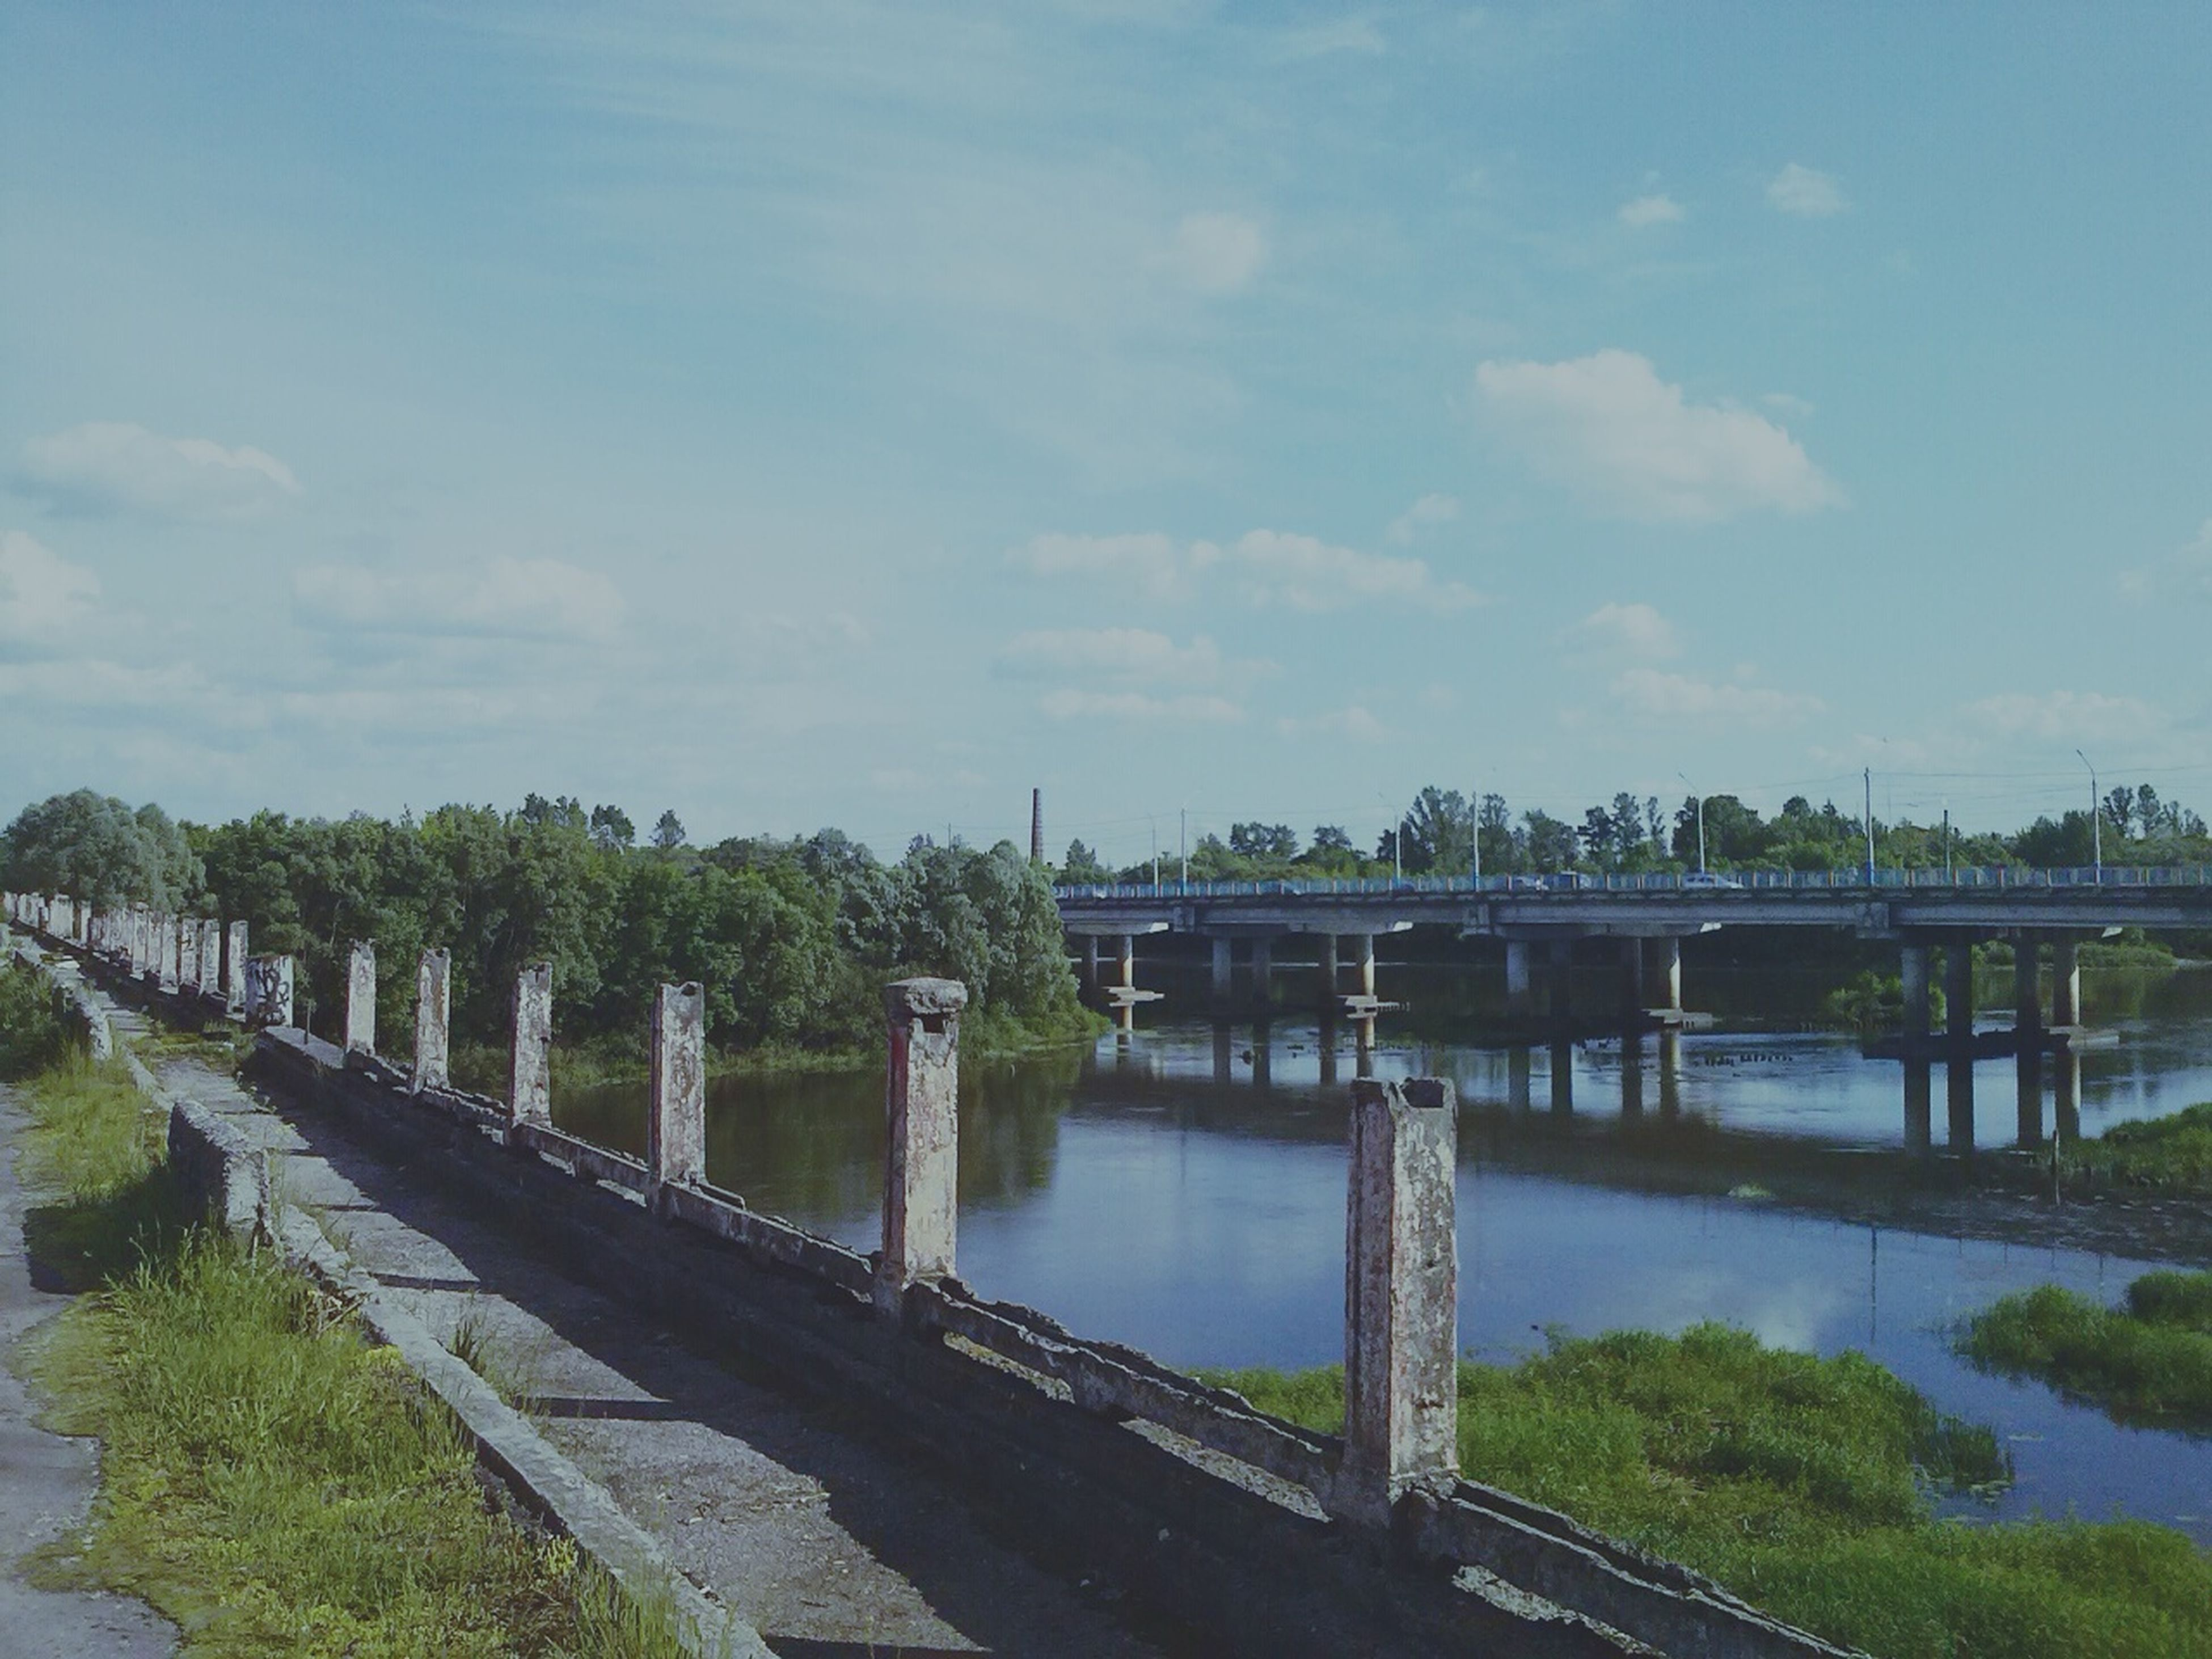 water, bridge - man made structure, connection, river, sky, built structure, railing, tree, architecture, bridge, reflection, tranquility, nature, footbridge, tranquil scene, cloud - sky, transportation, lake, day, canal